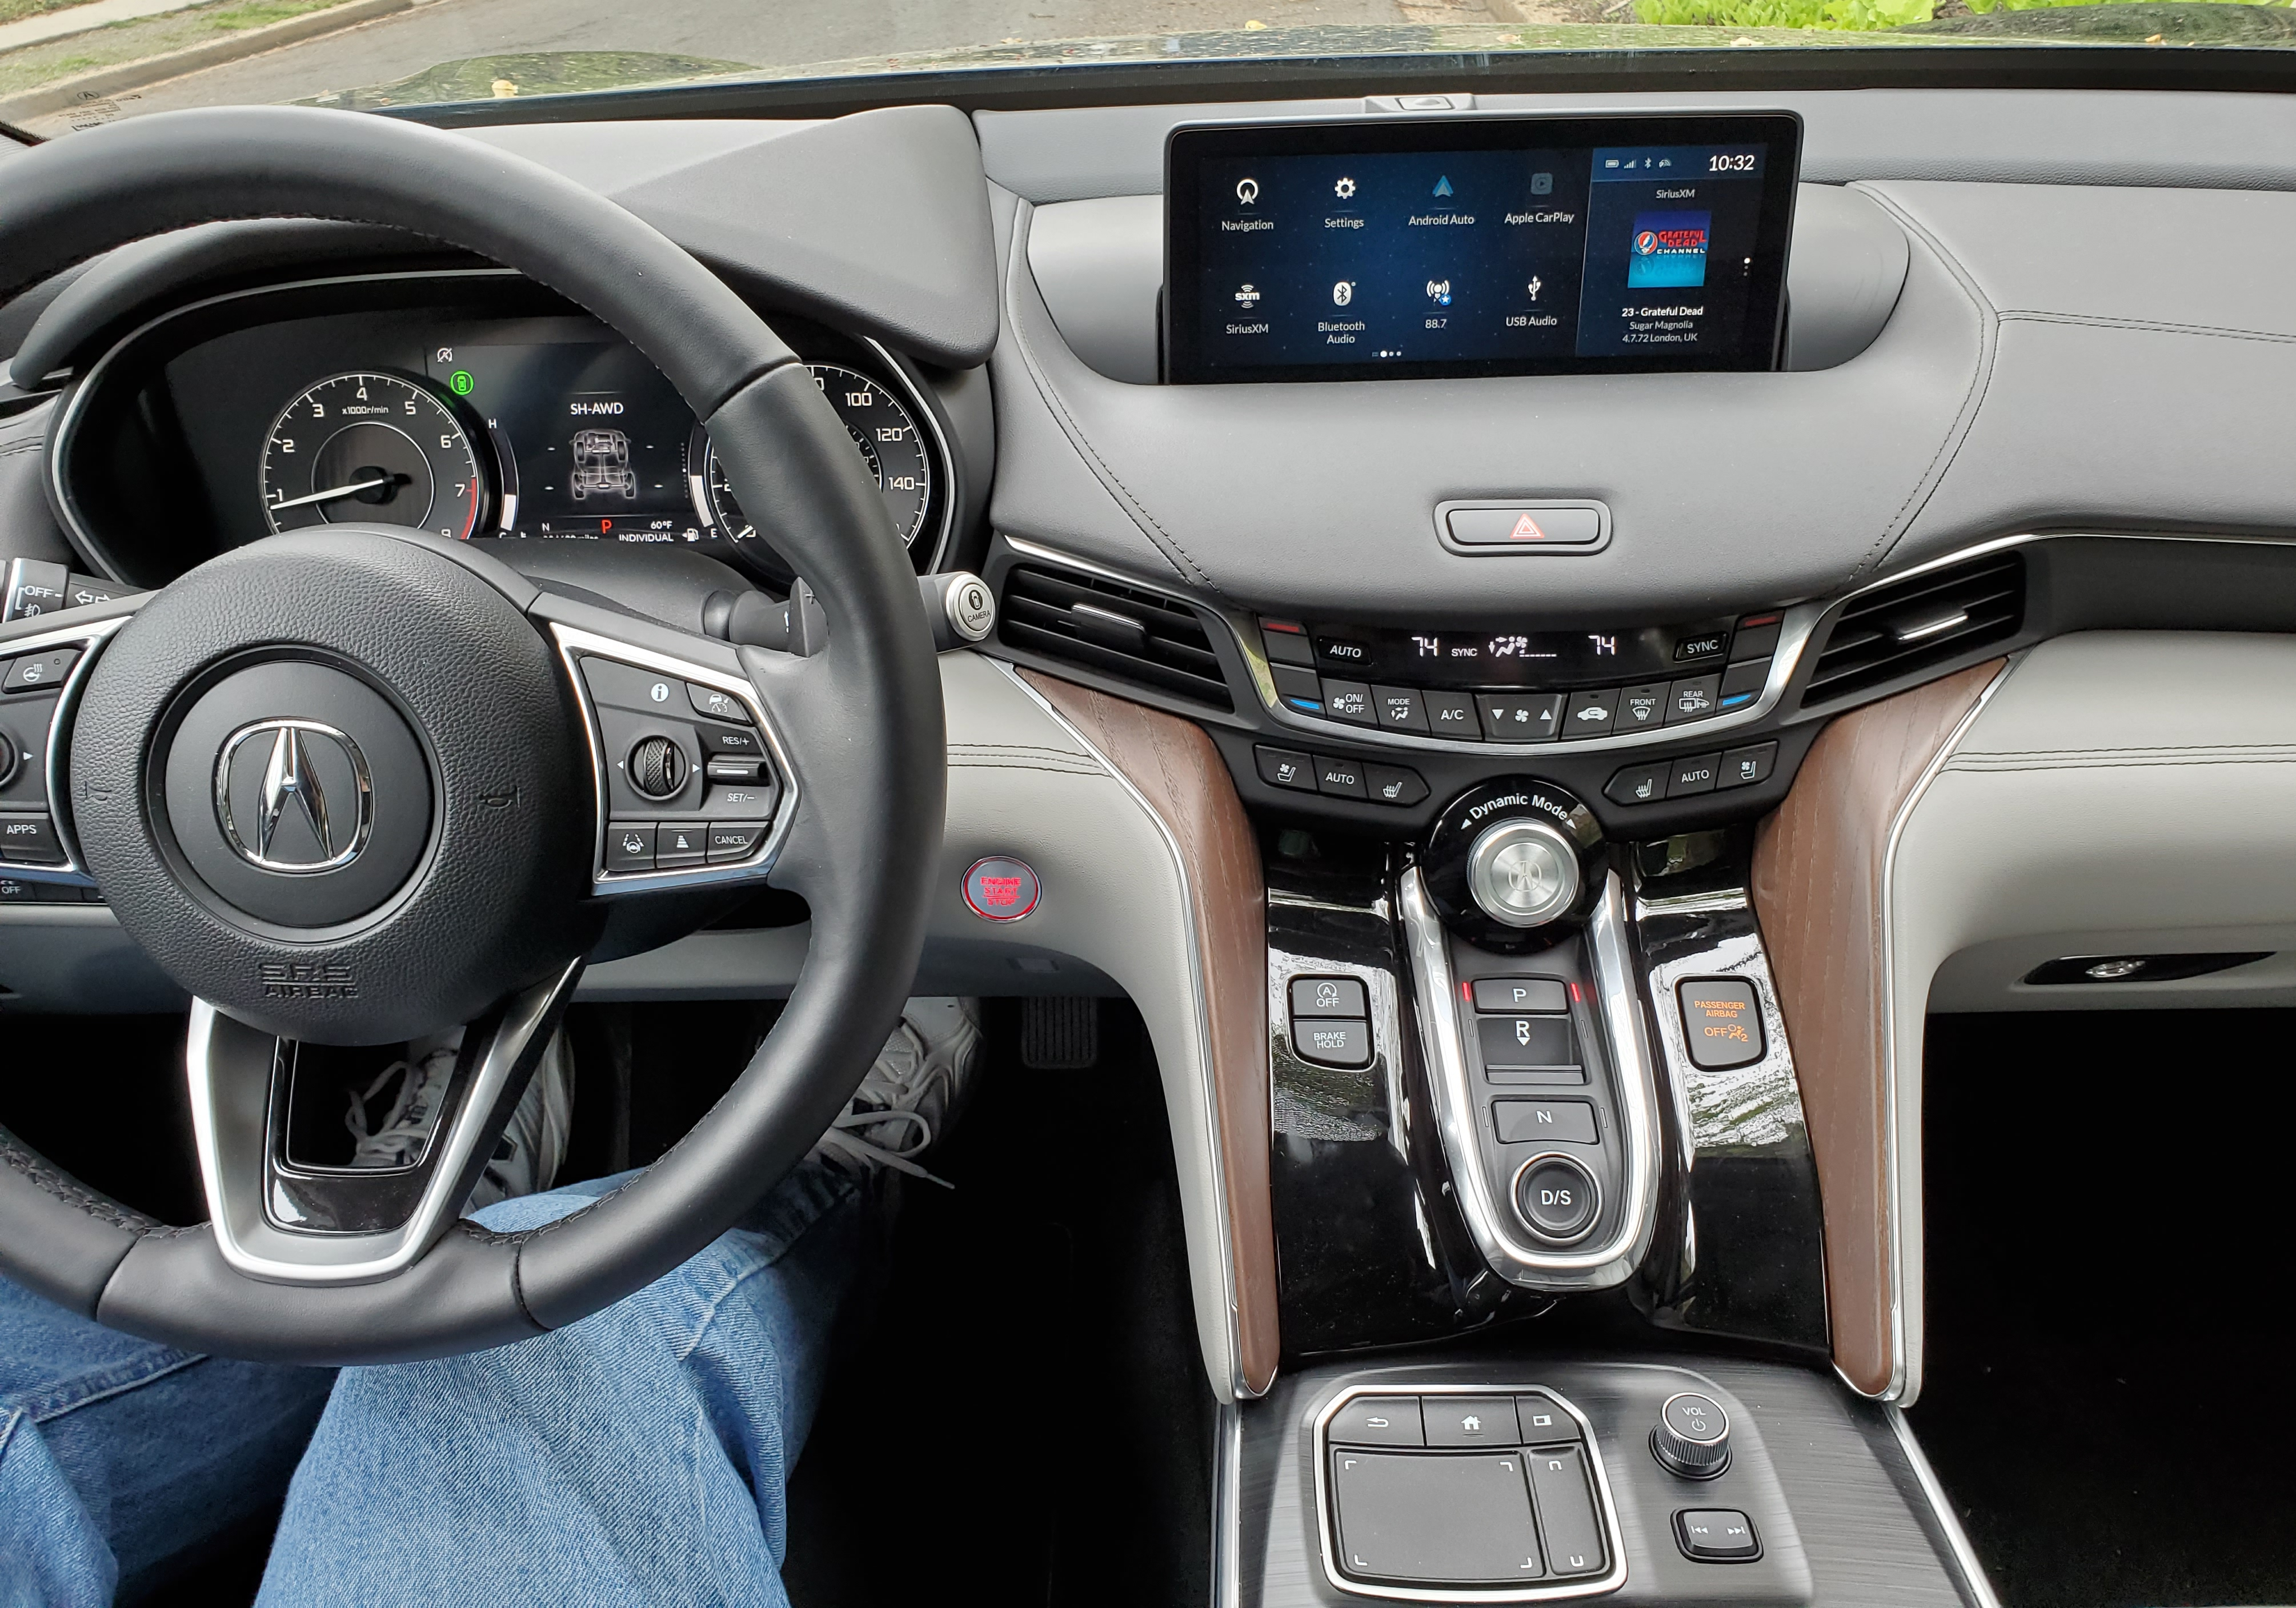 2021 Acura TLX Drivers Center Console view